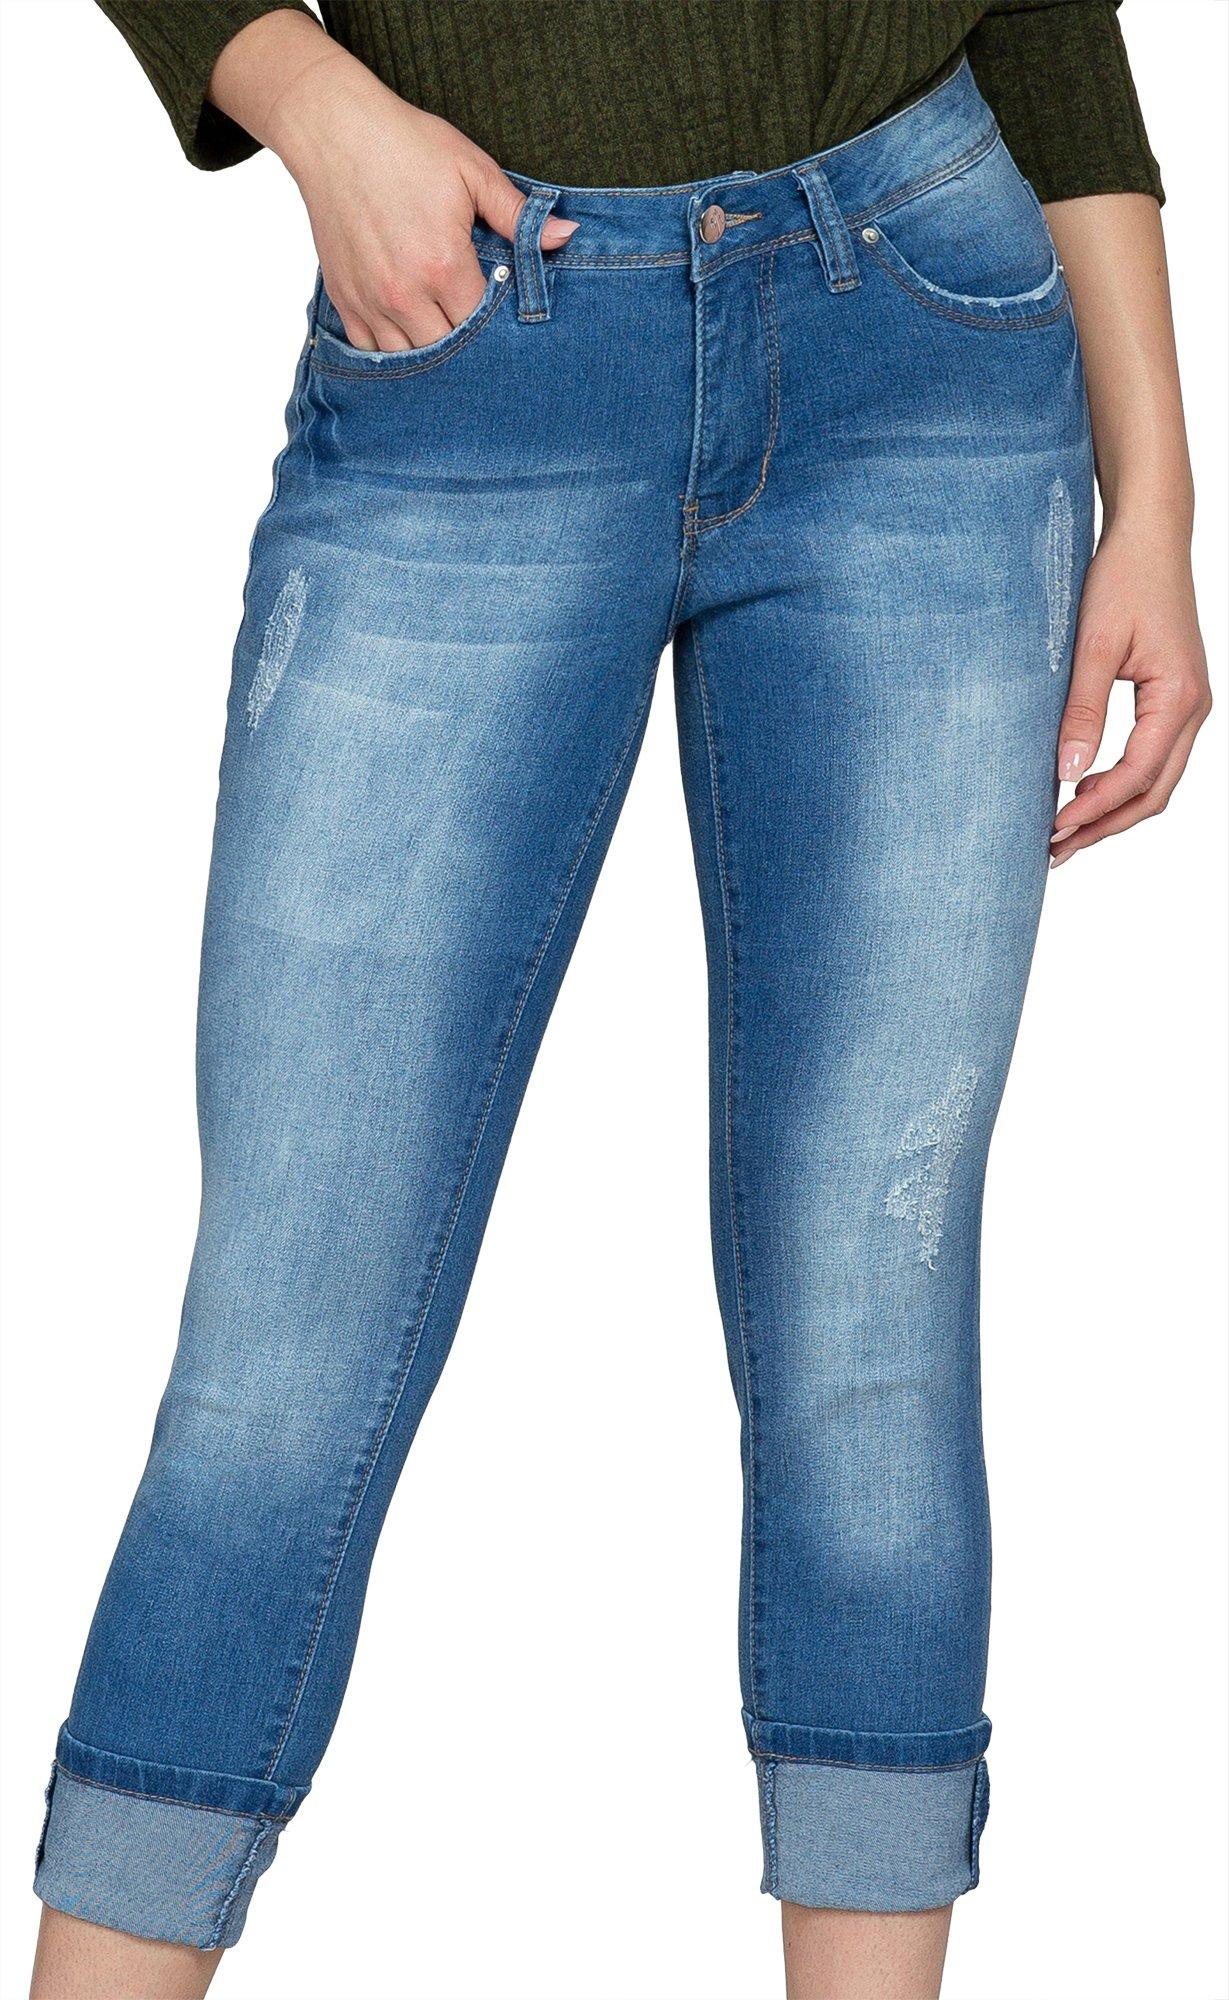 Royalty by YMI Petite Mega Roll Cuff Ankle Jeans | Bealls ...